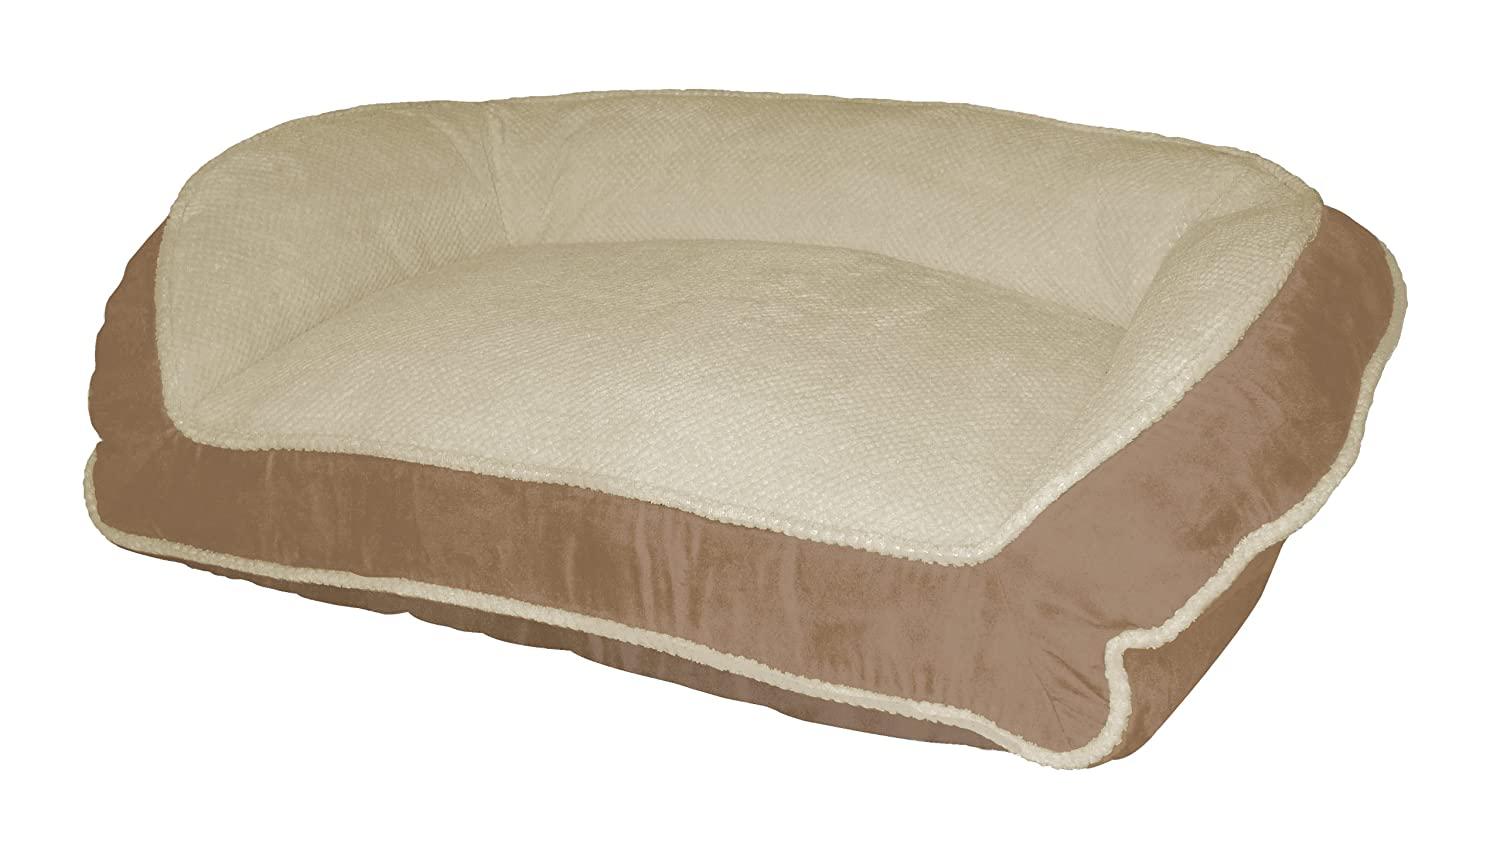 Paws & Claws 59-00330TAN Deep Seated Lounger